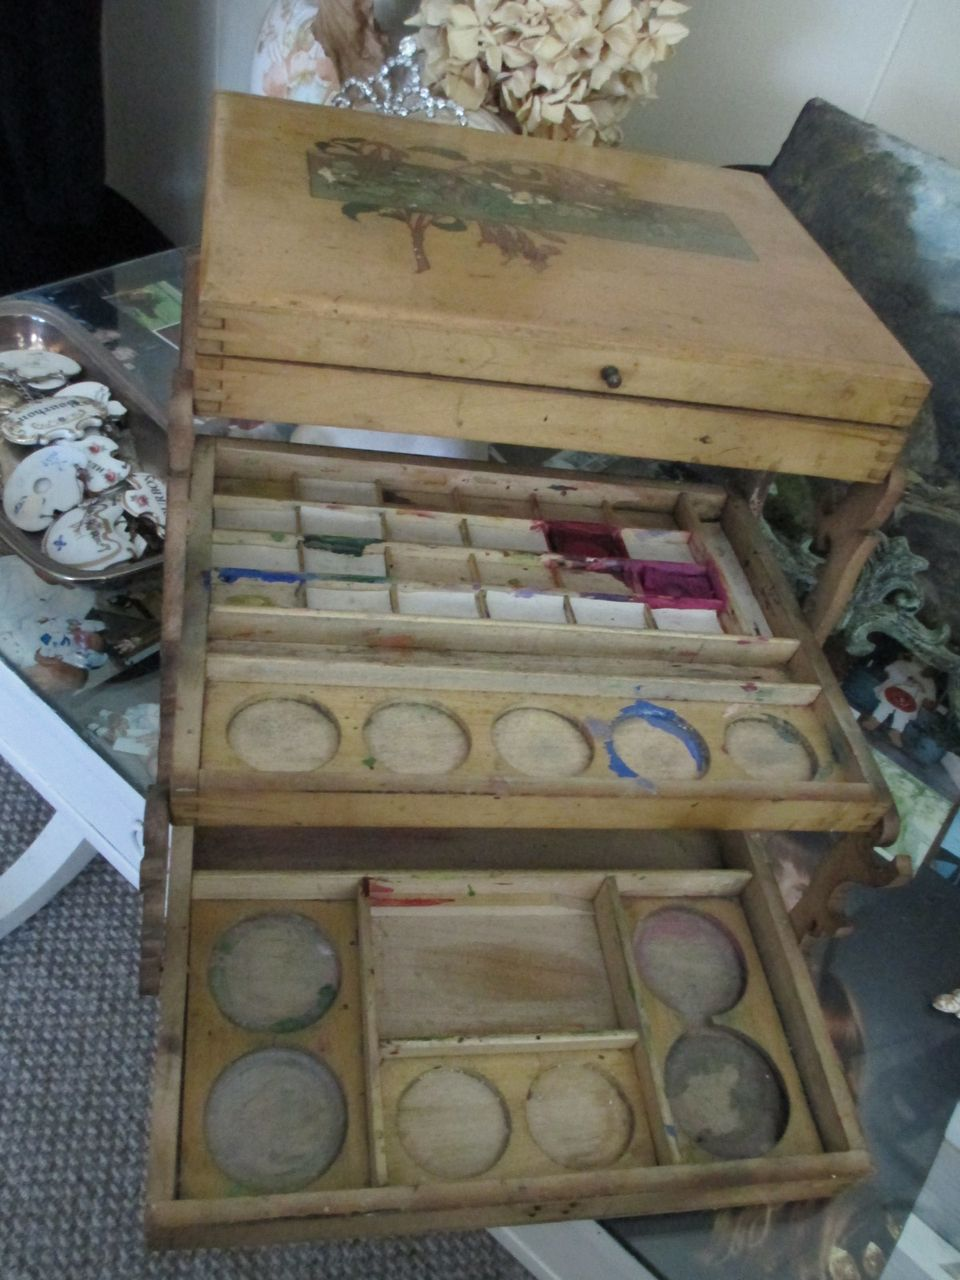 REDUCED: Victorian Child's Painting Craft Box